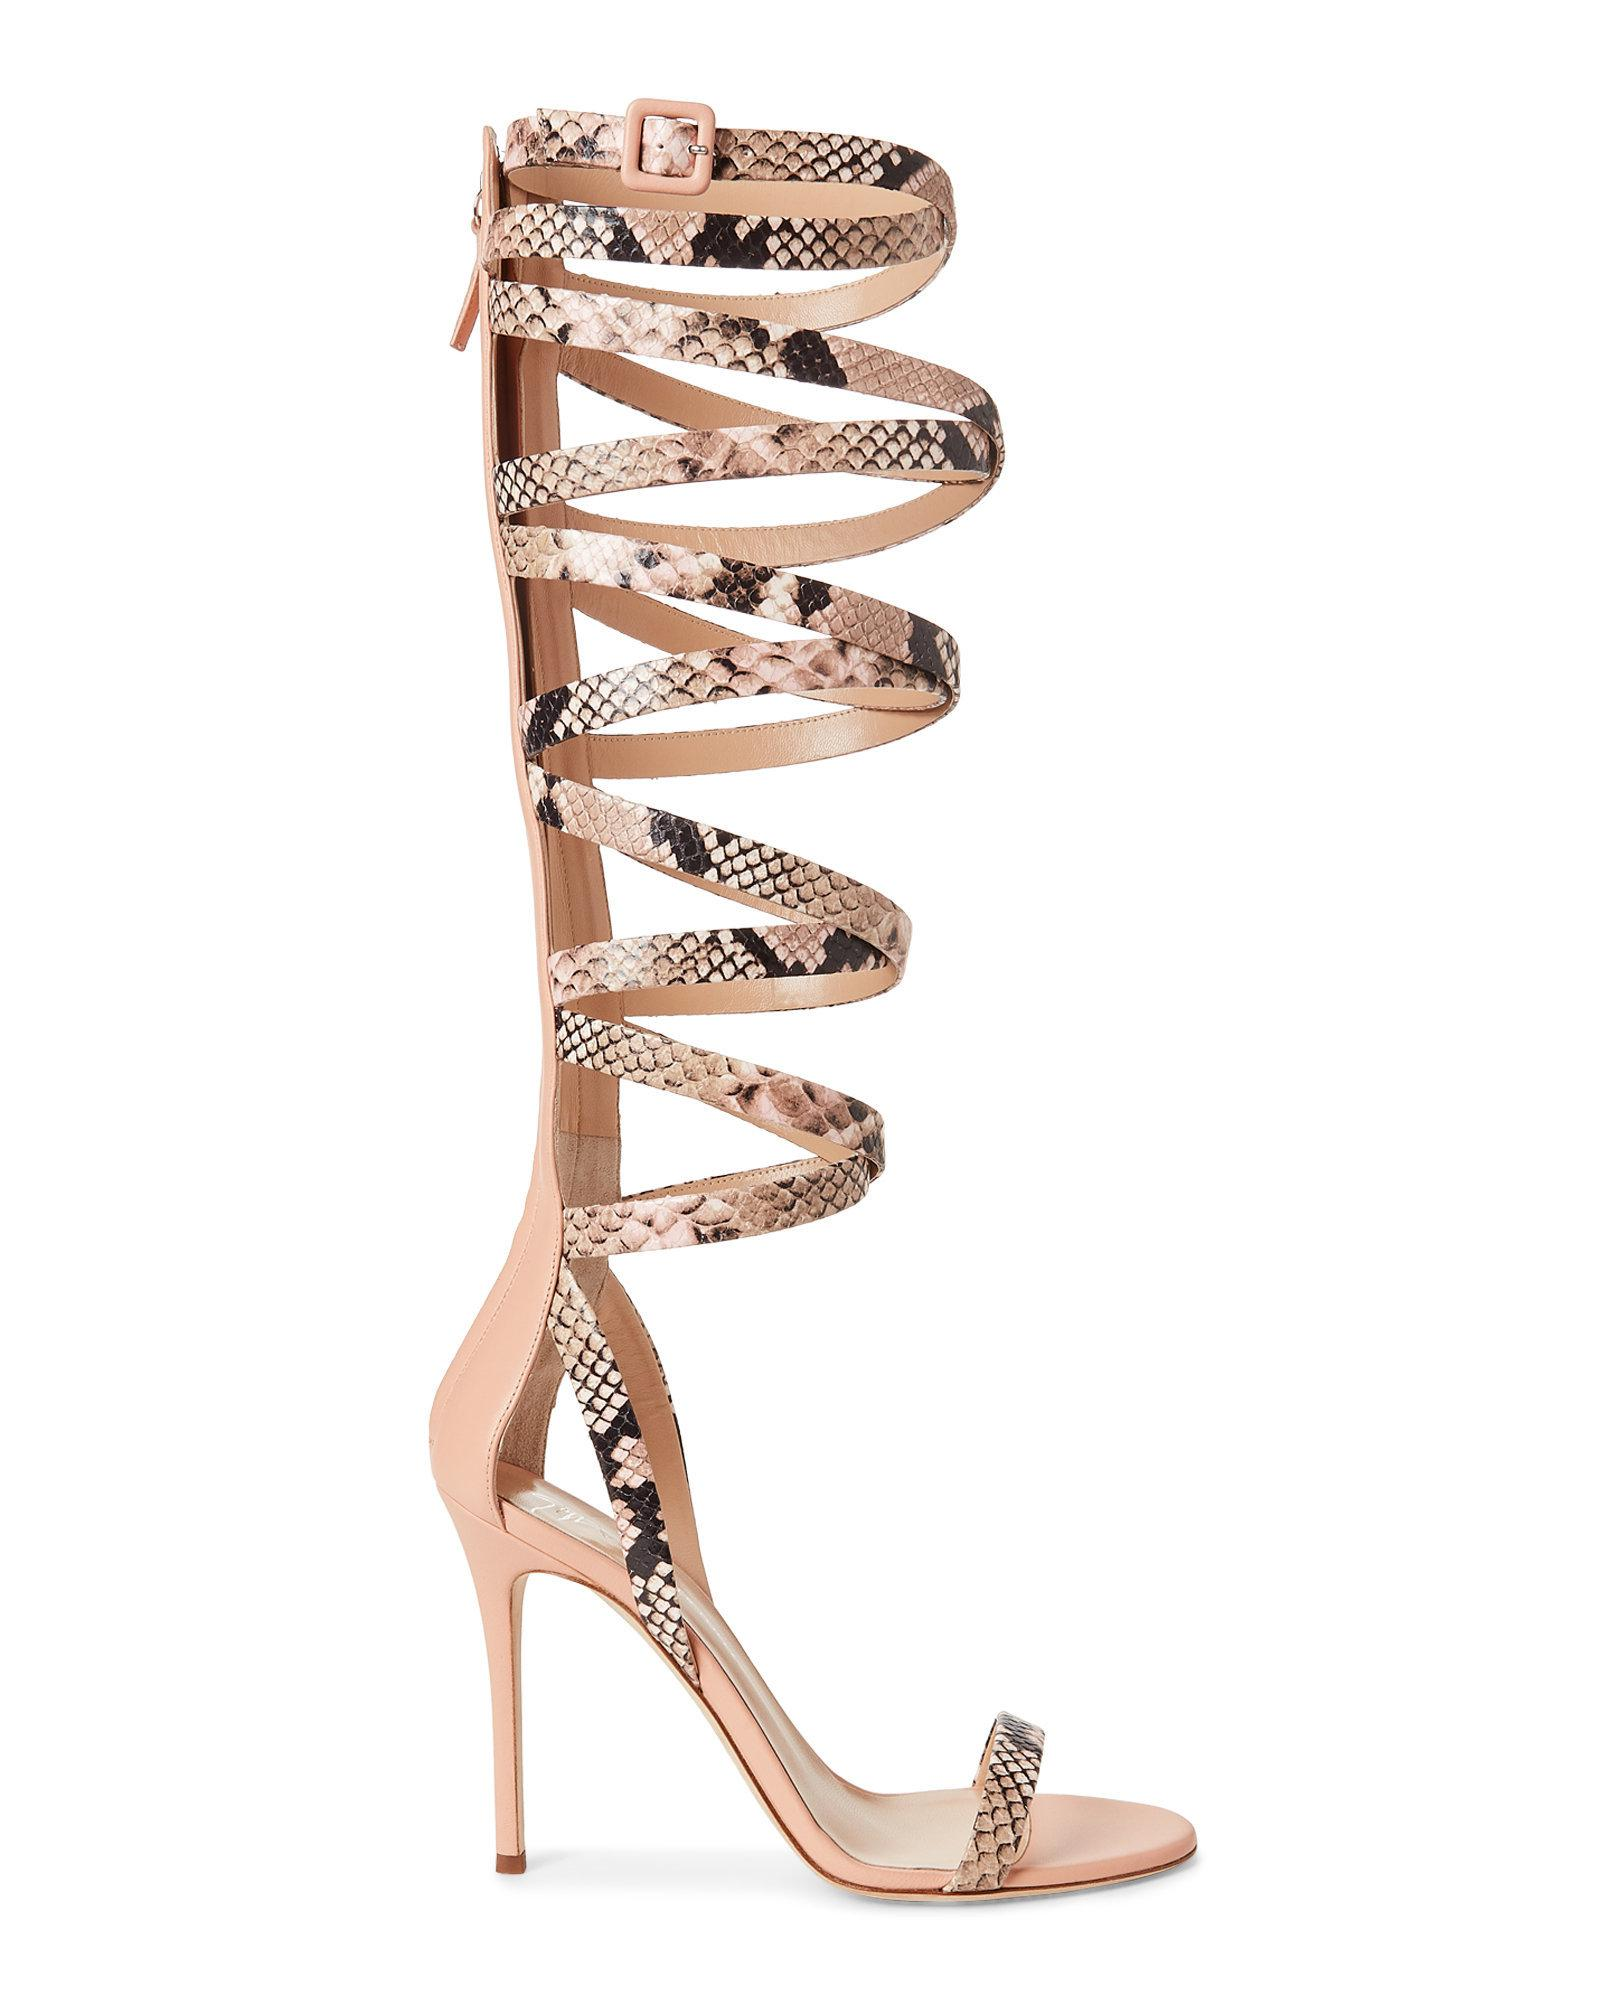 fashion Style online Giuseppe Zanotti Snakeskin Cage Sandals free shipping wide range of explore cheap price 48JOTF